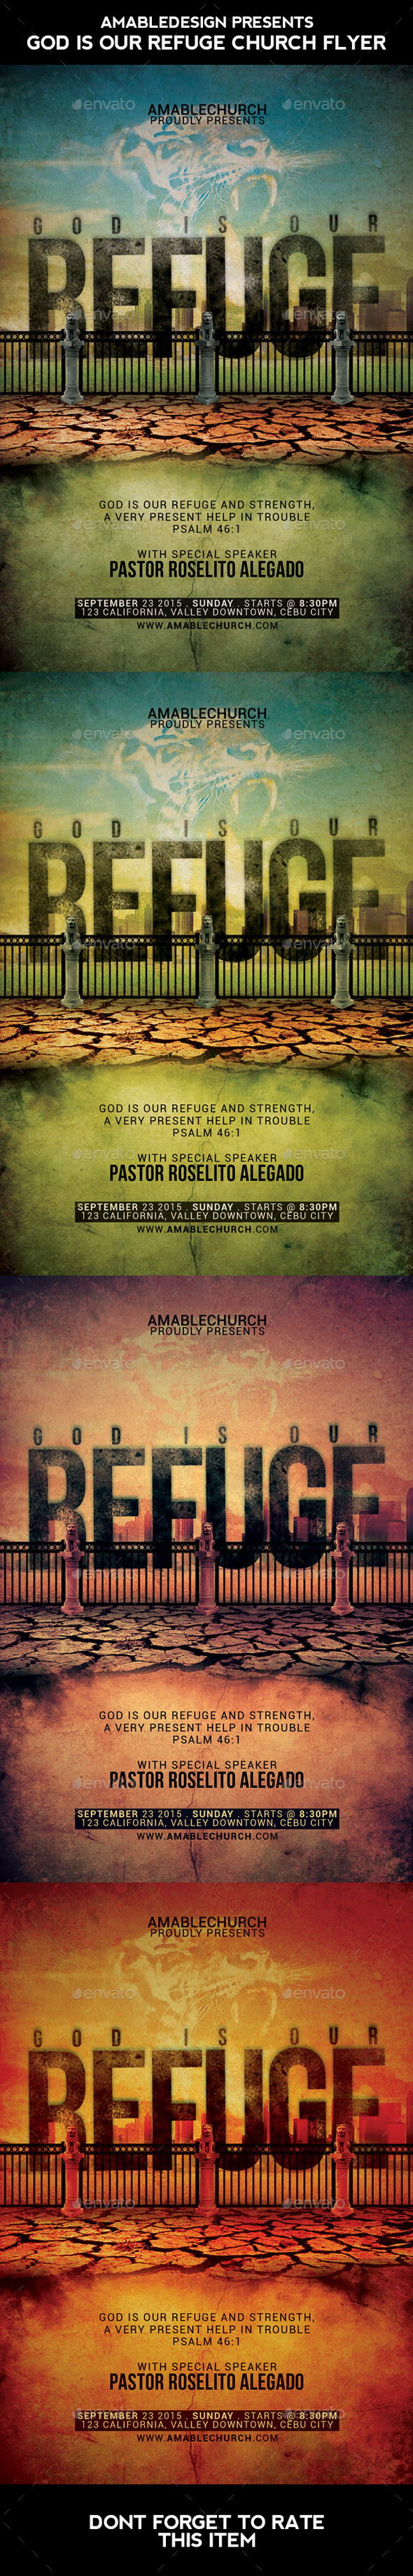 God is our Refuge Church Flyer - Church Flyers